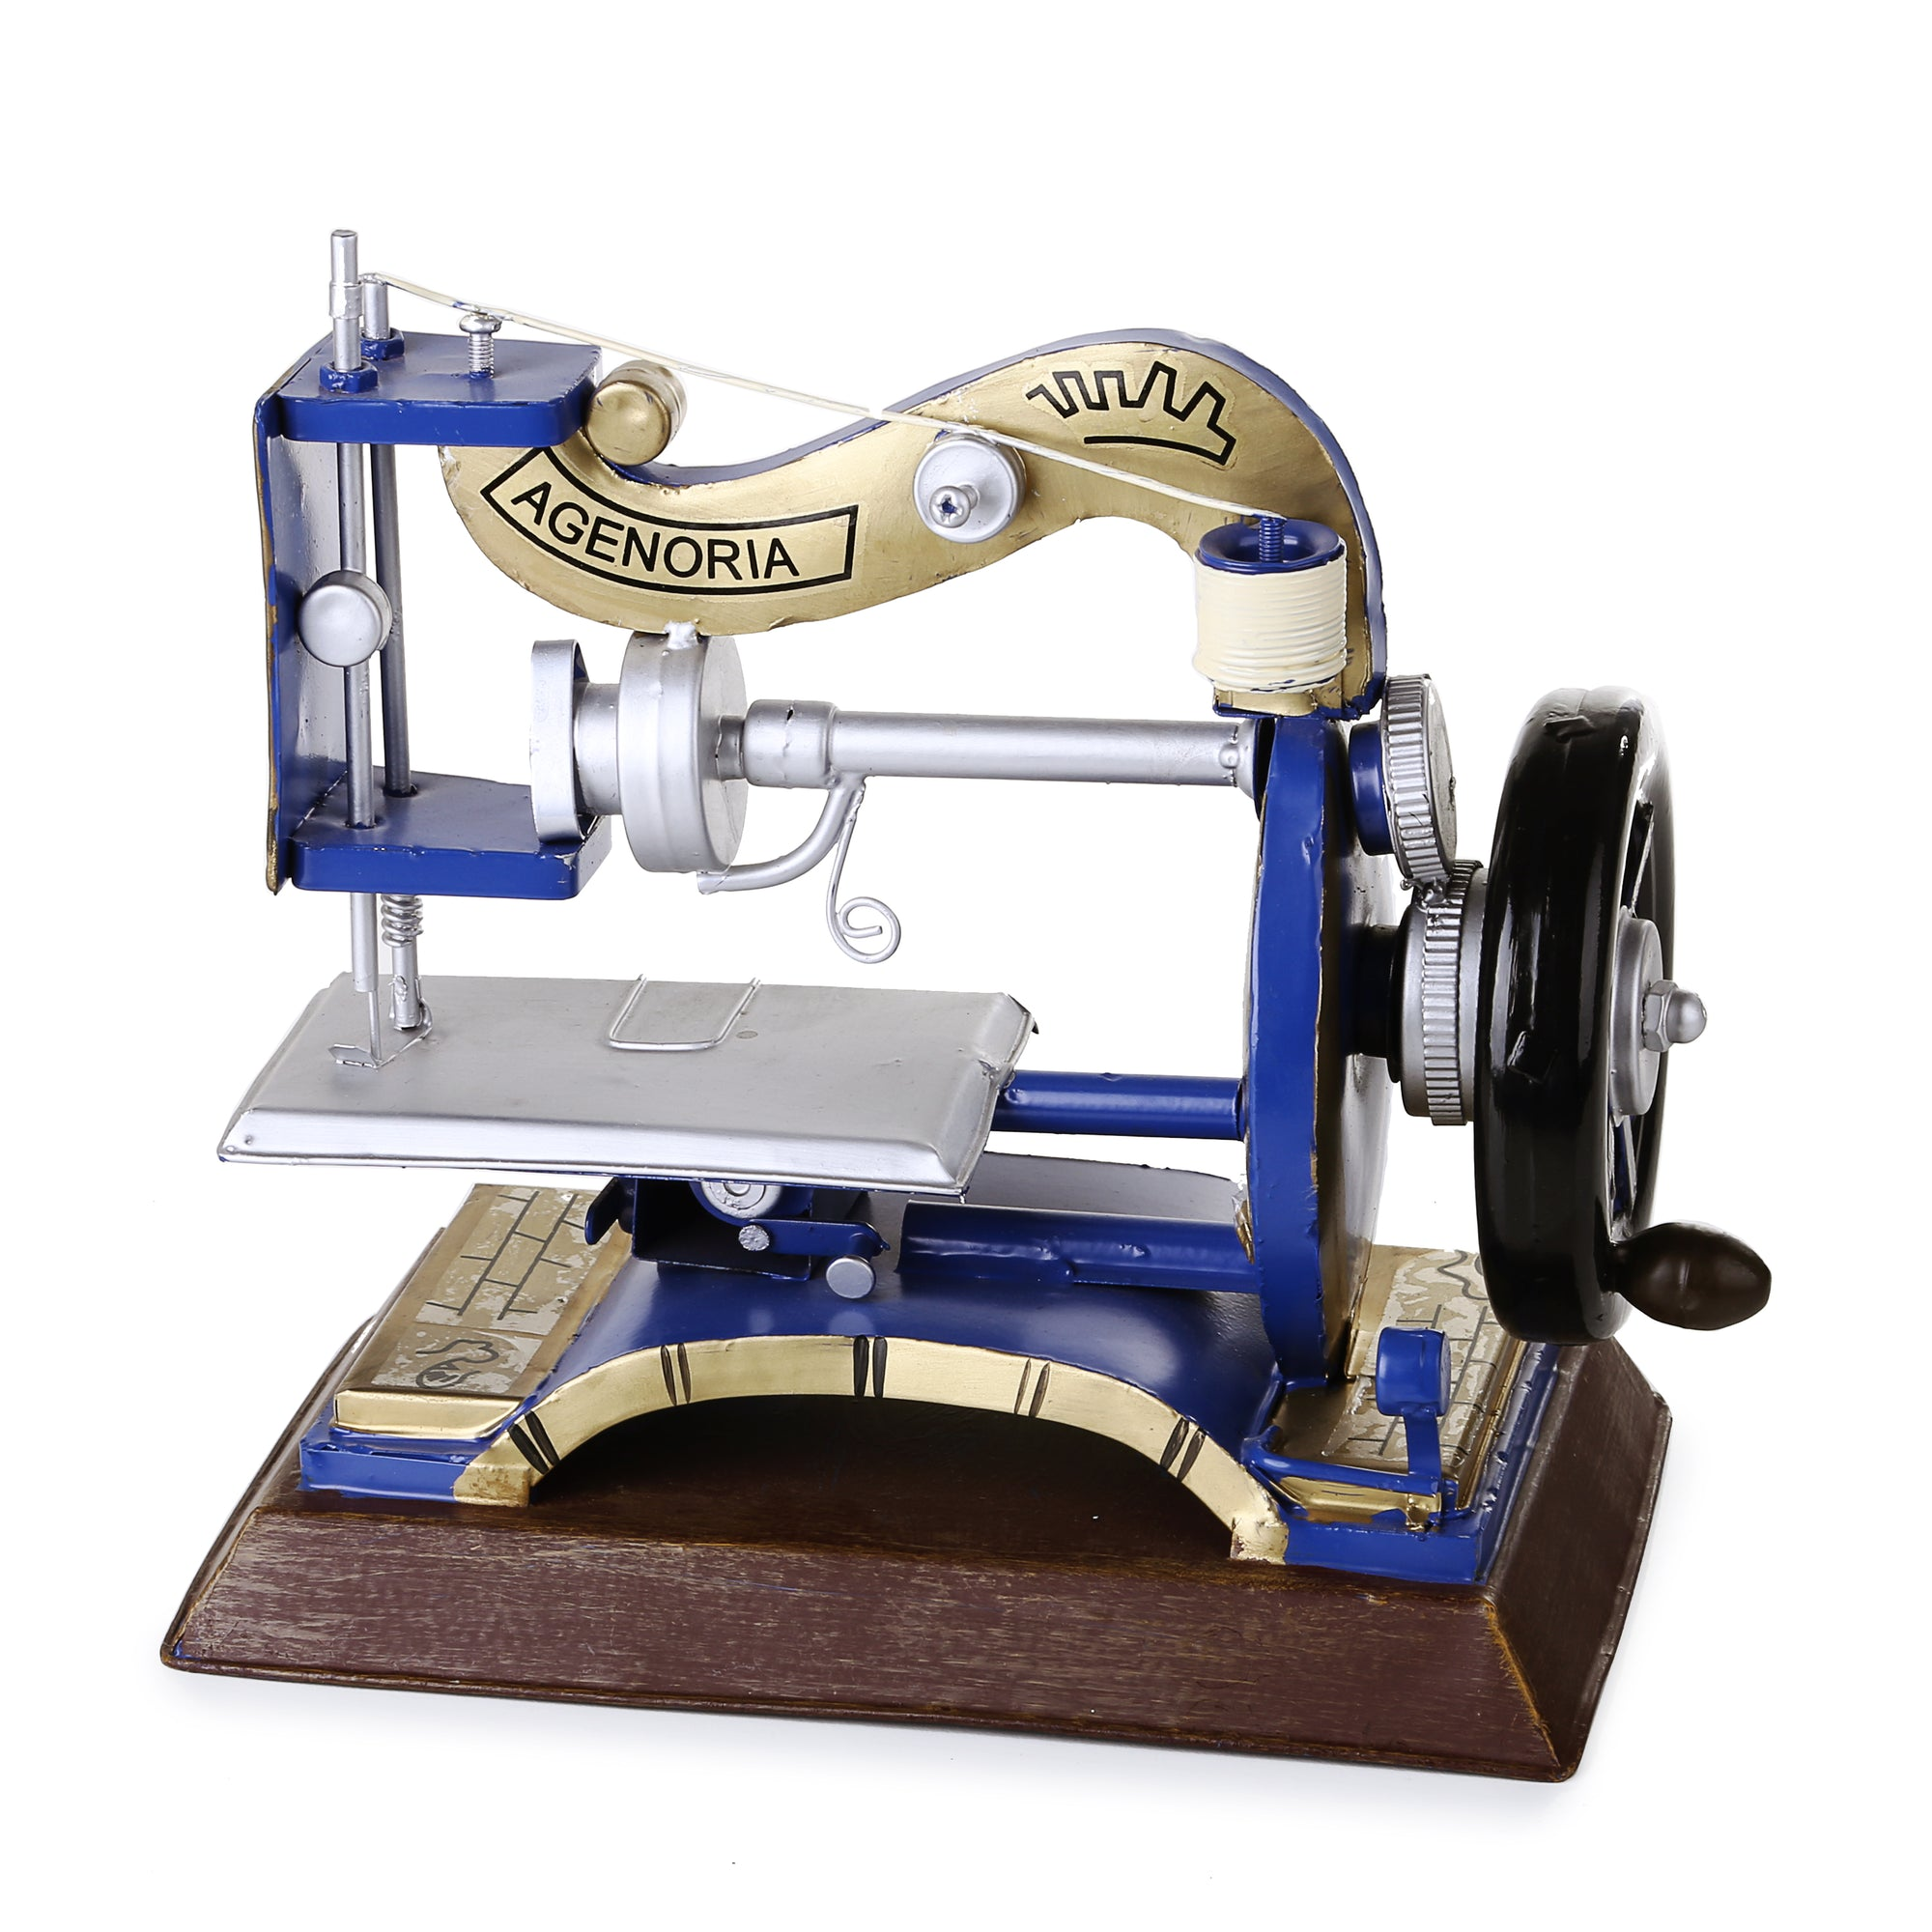 Agenoria Sewing Machine Model